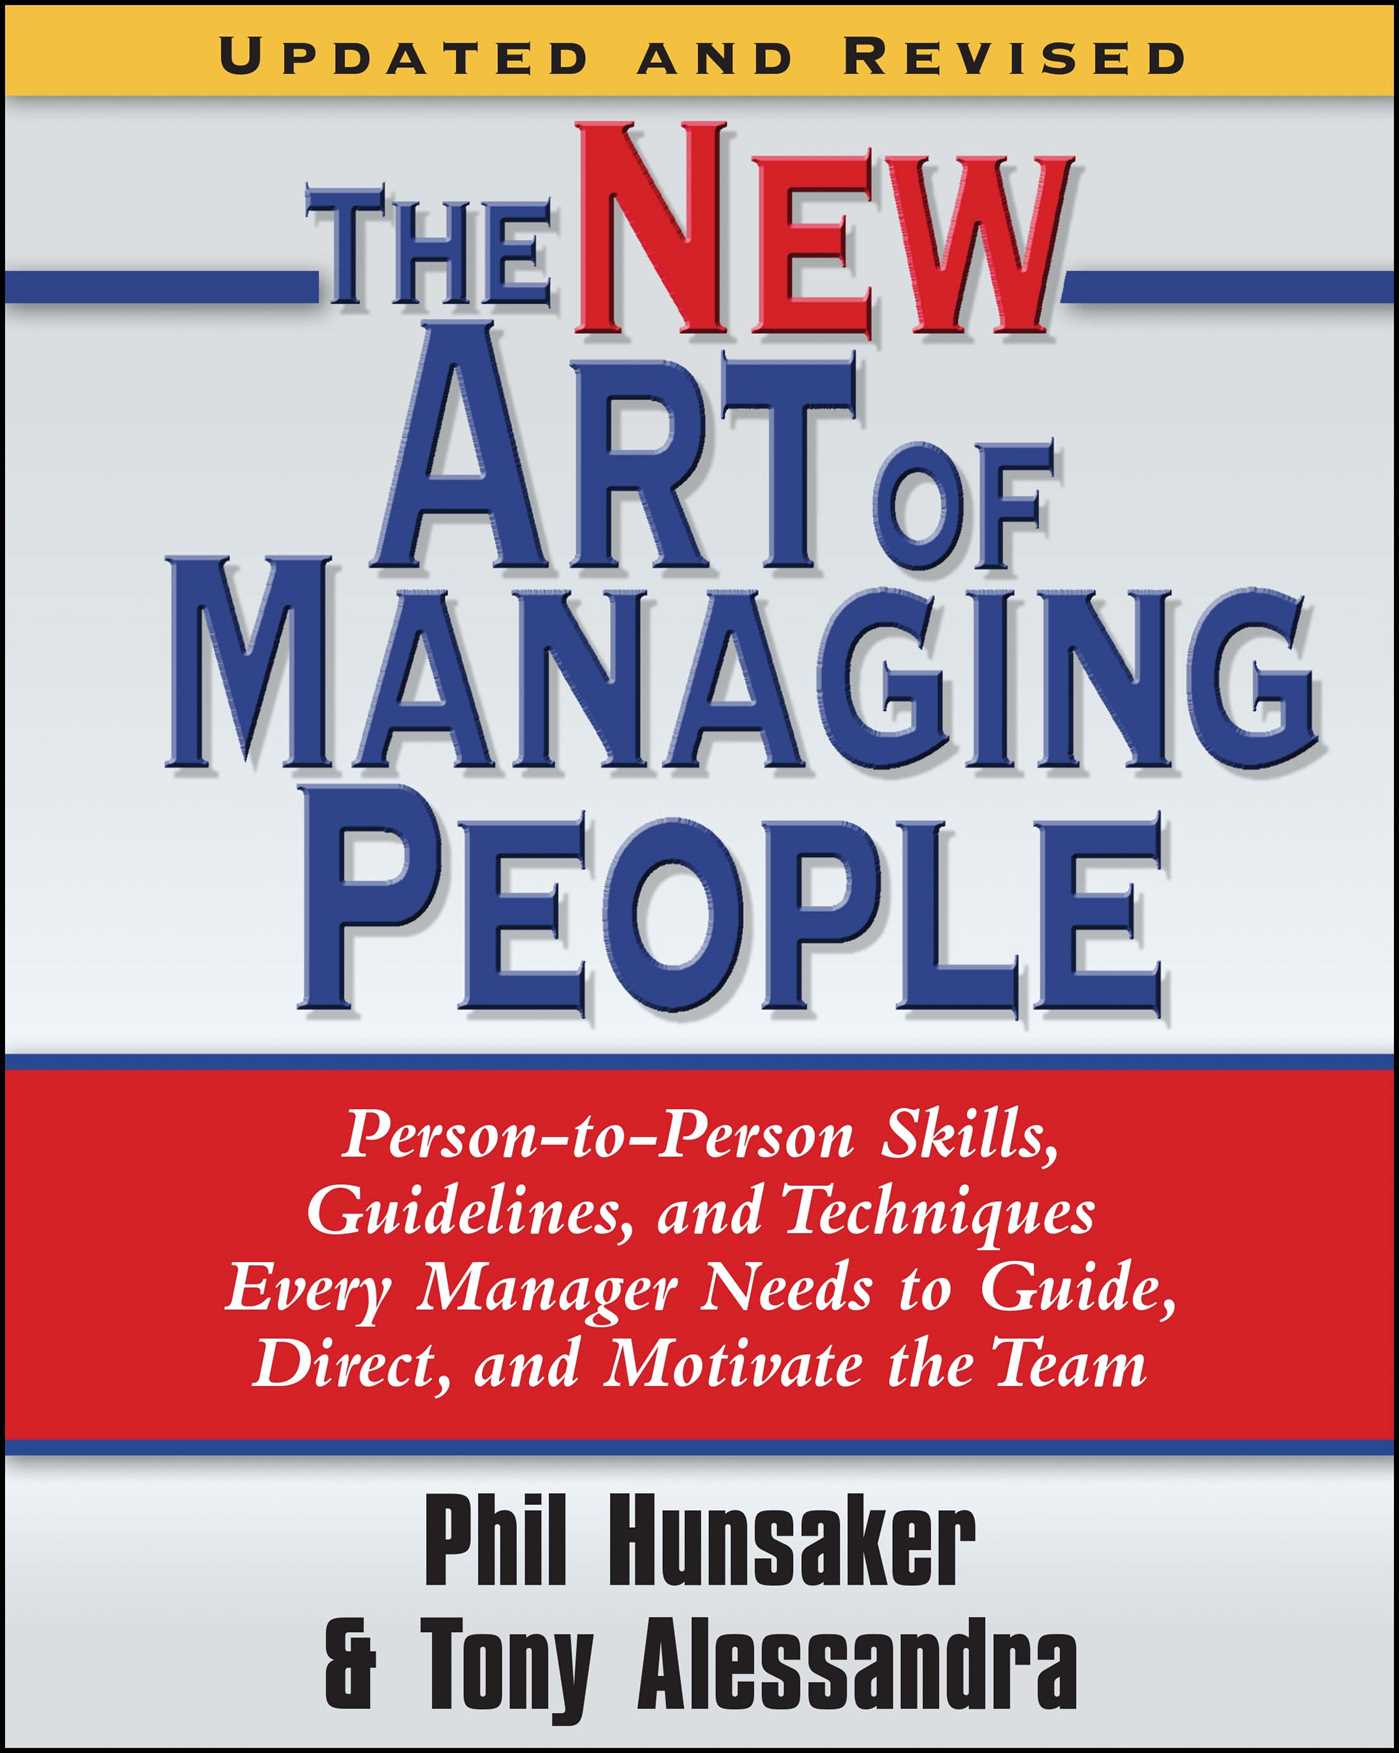 The new art of managing people updated and revised 9781416550624 hr